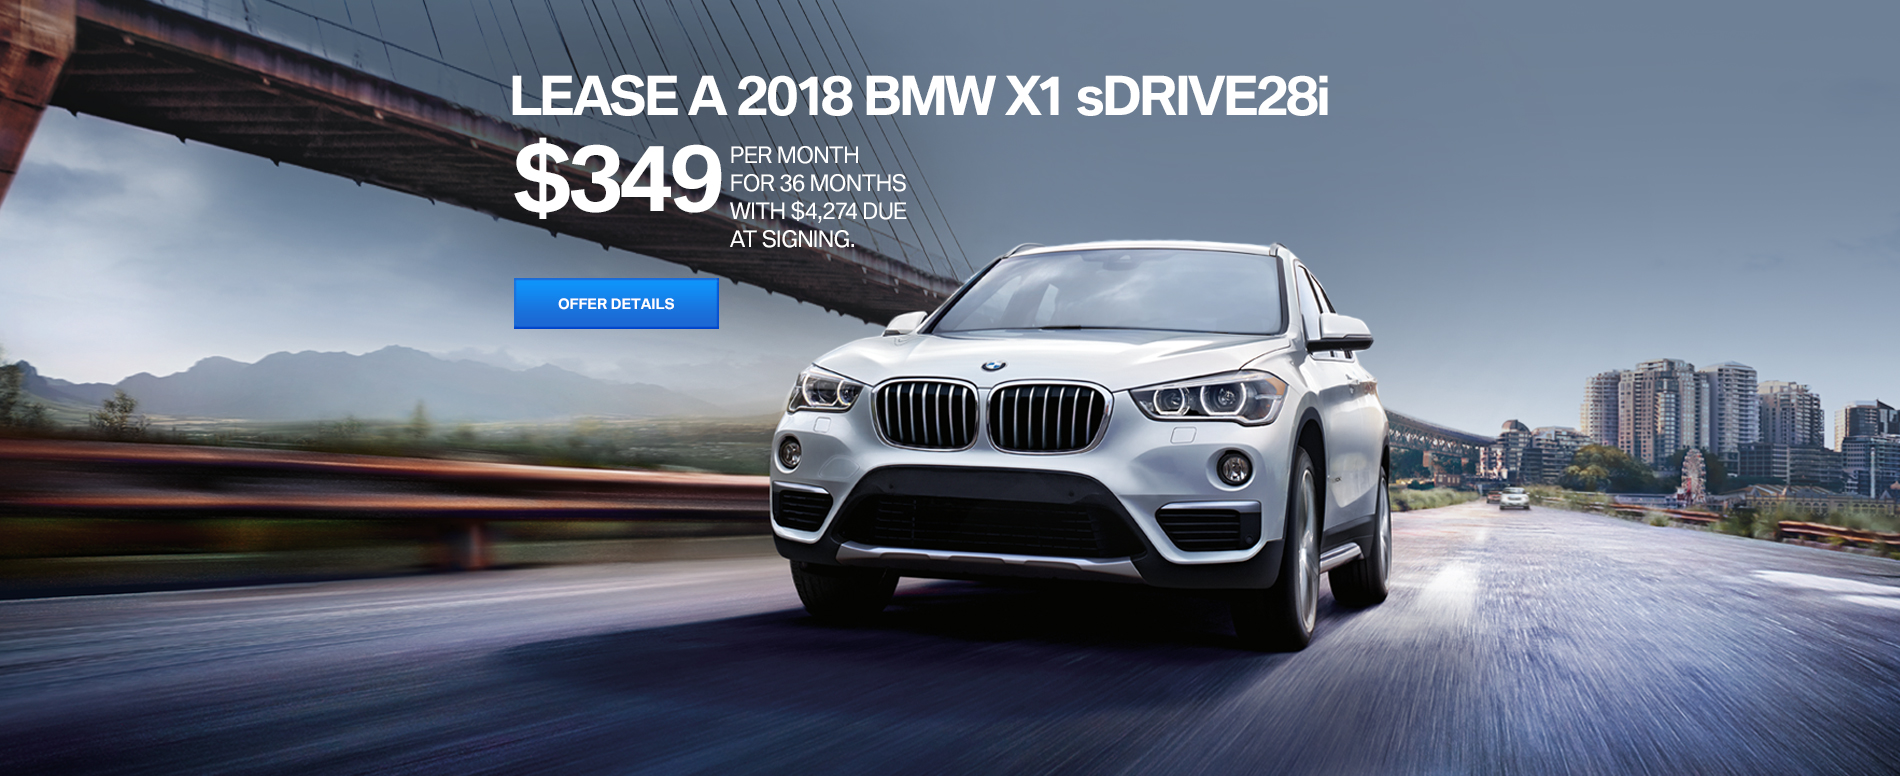 LEASE A 2018 BMW X1 sDRIVE28i FOR $349 A MONTH FOR 36 MONTHS WIT